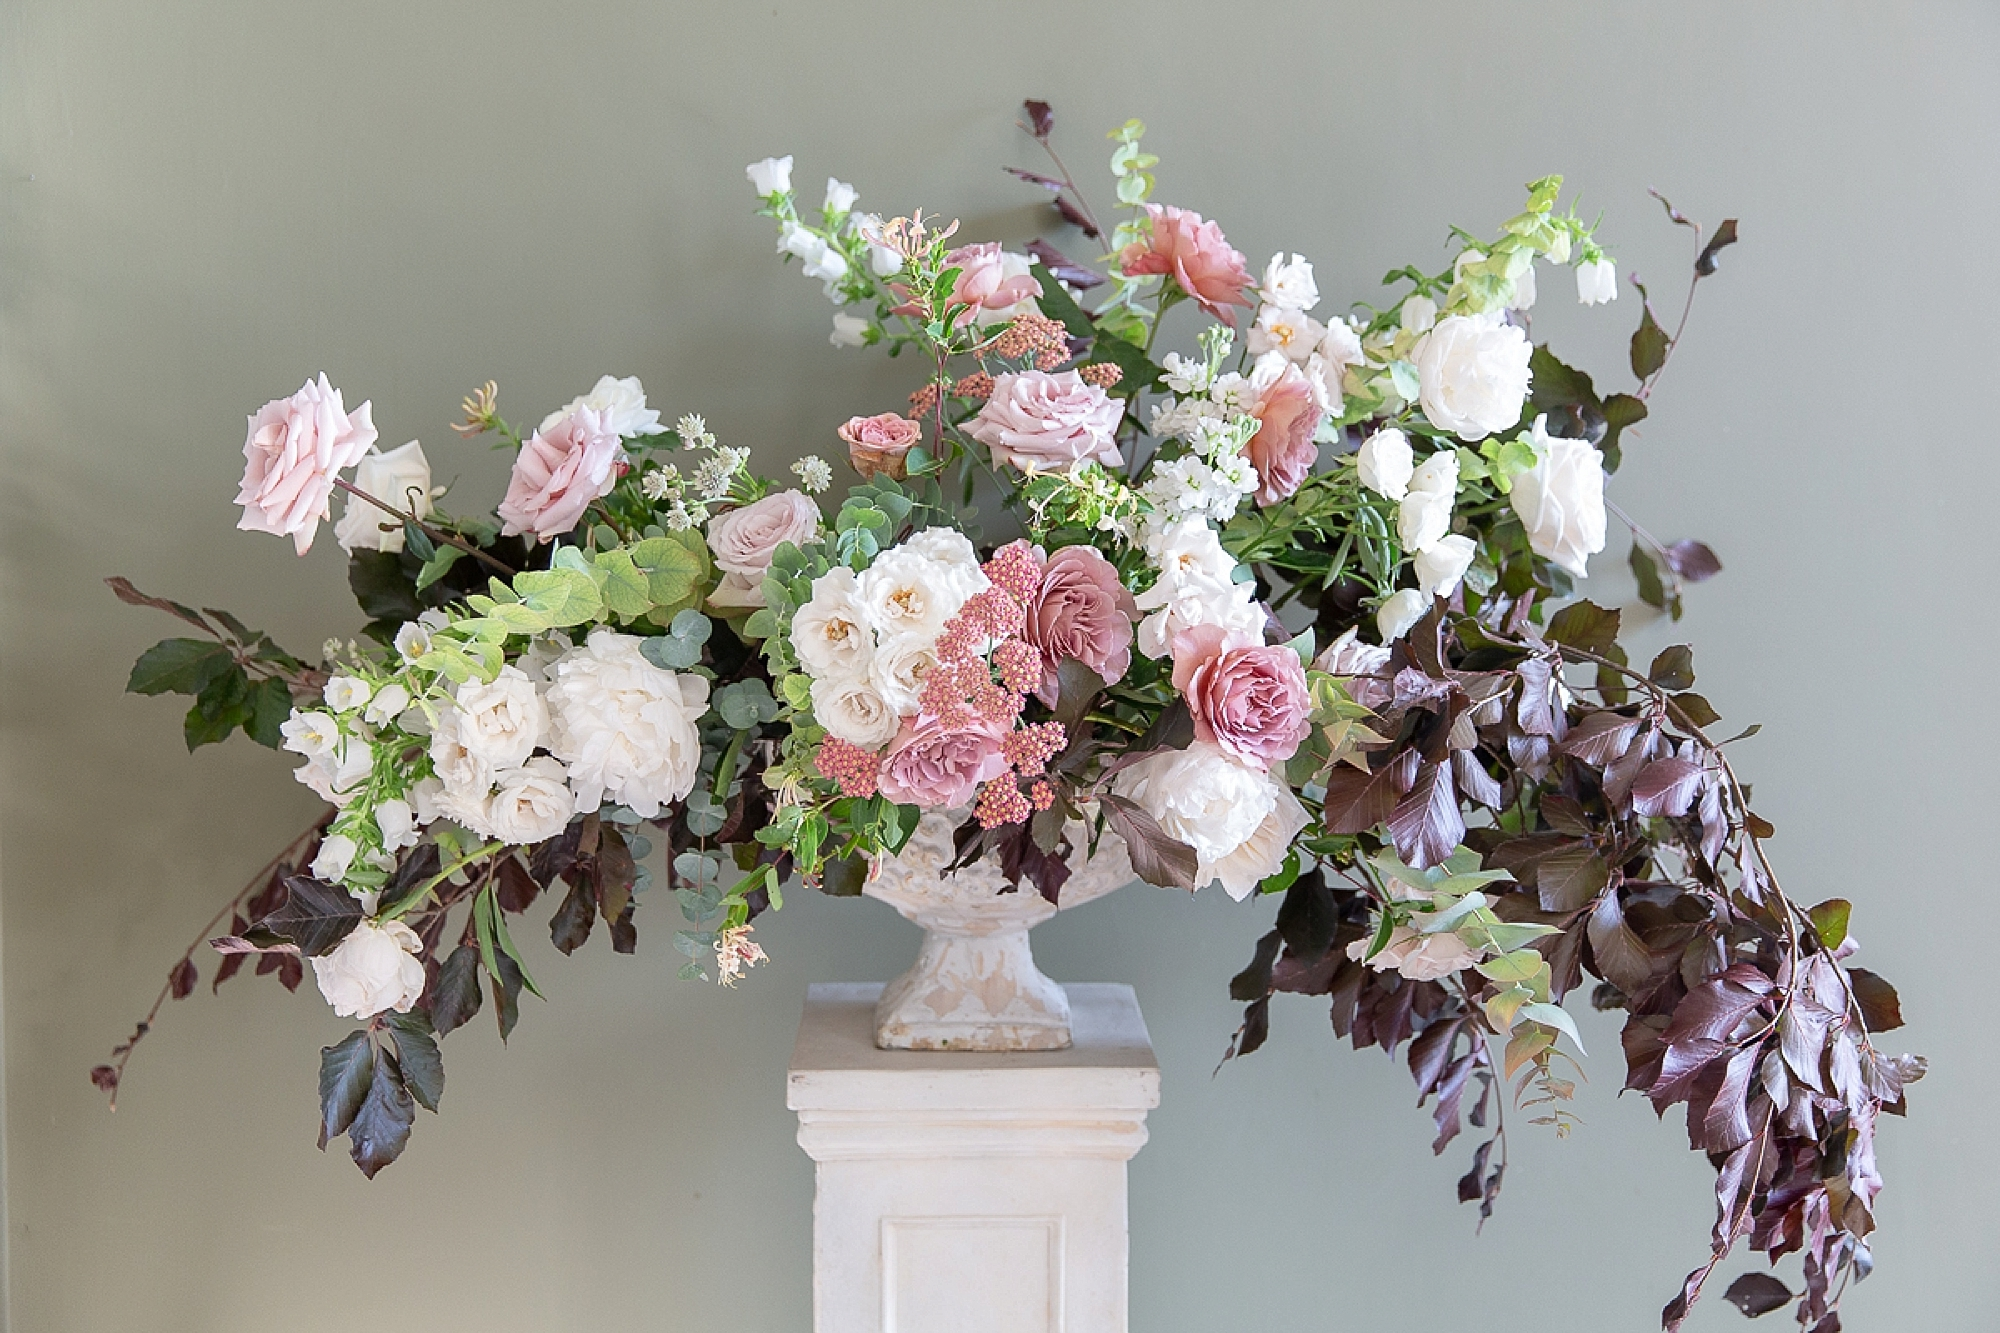 large floral display in a giant urn with pink, white flowers and auburn leaves